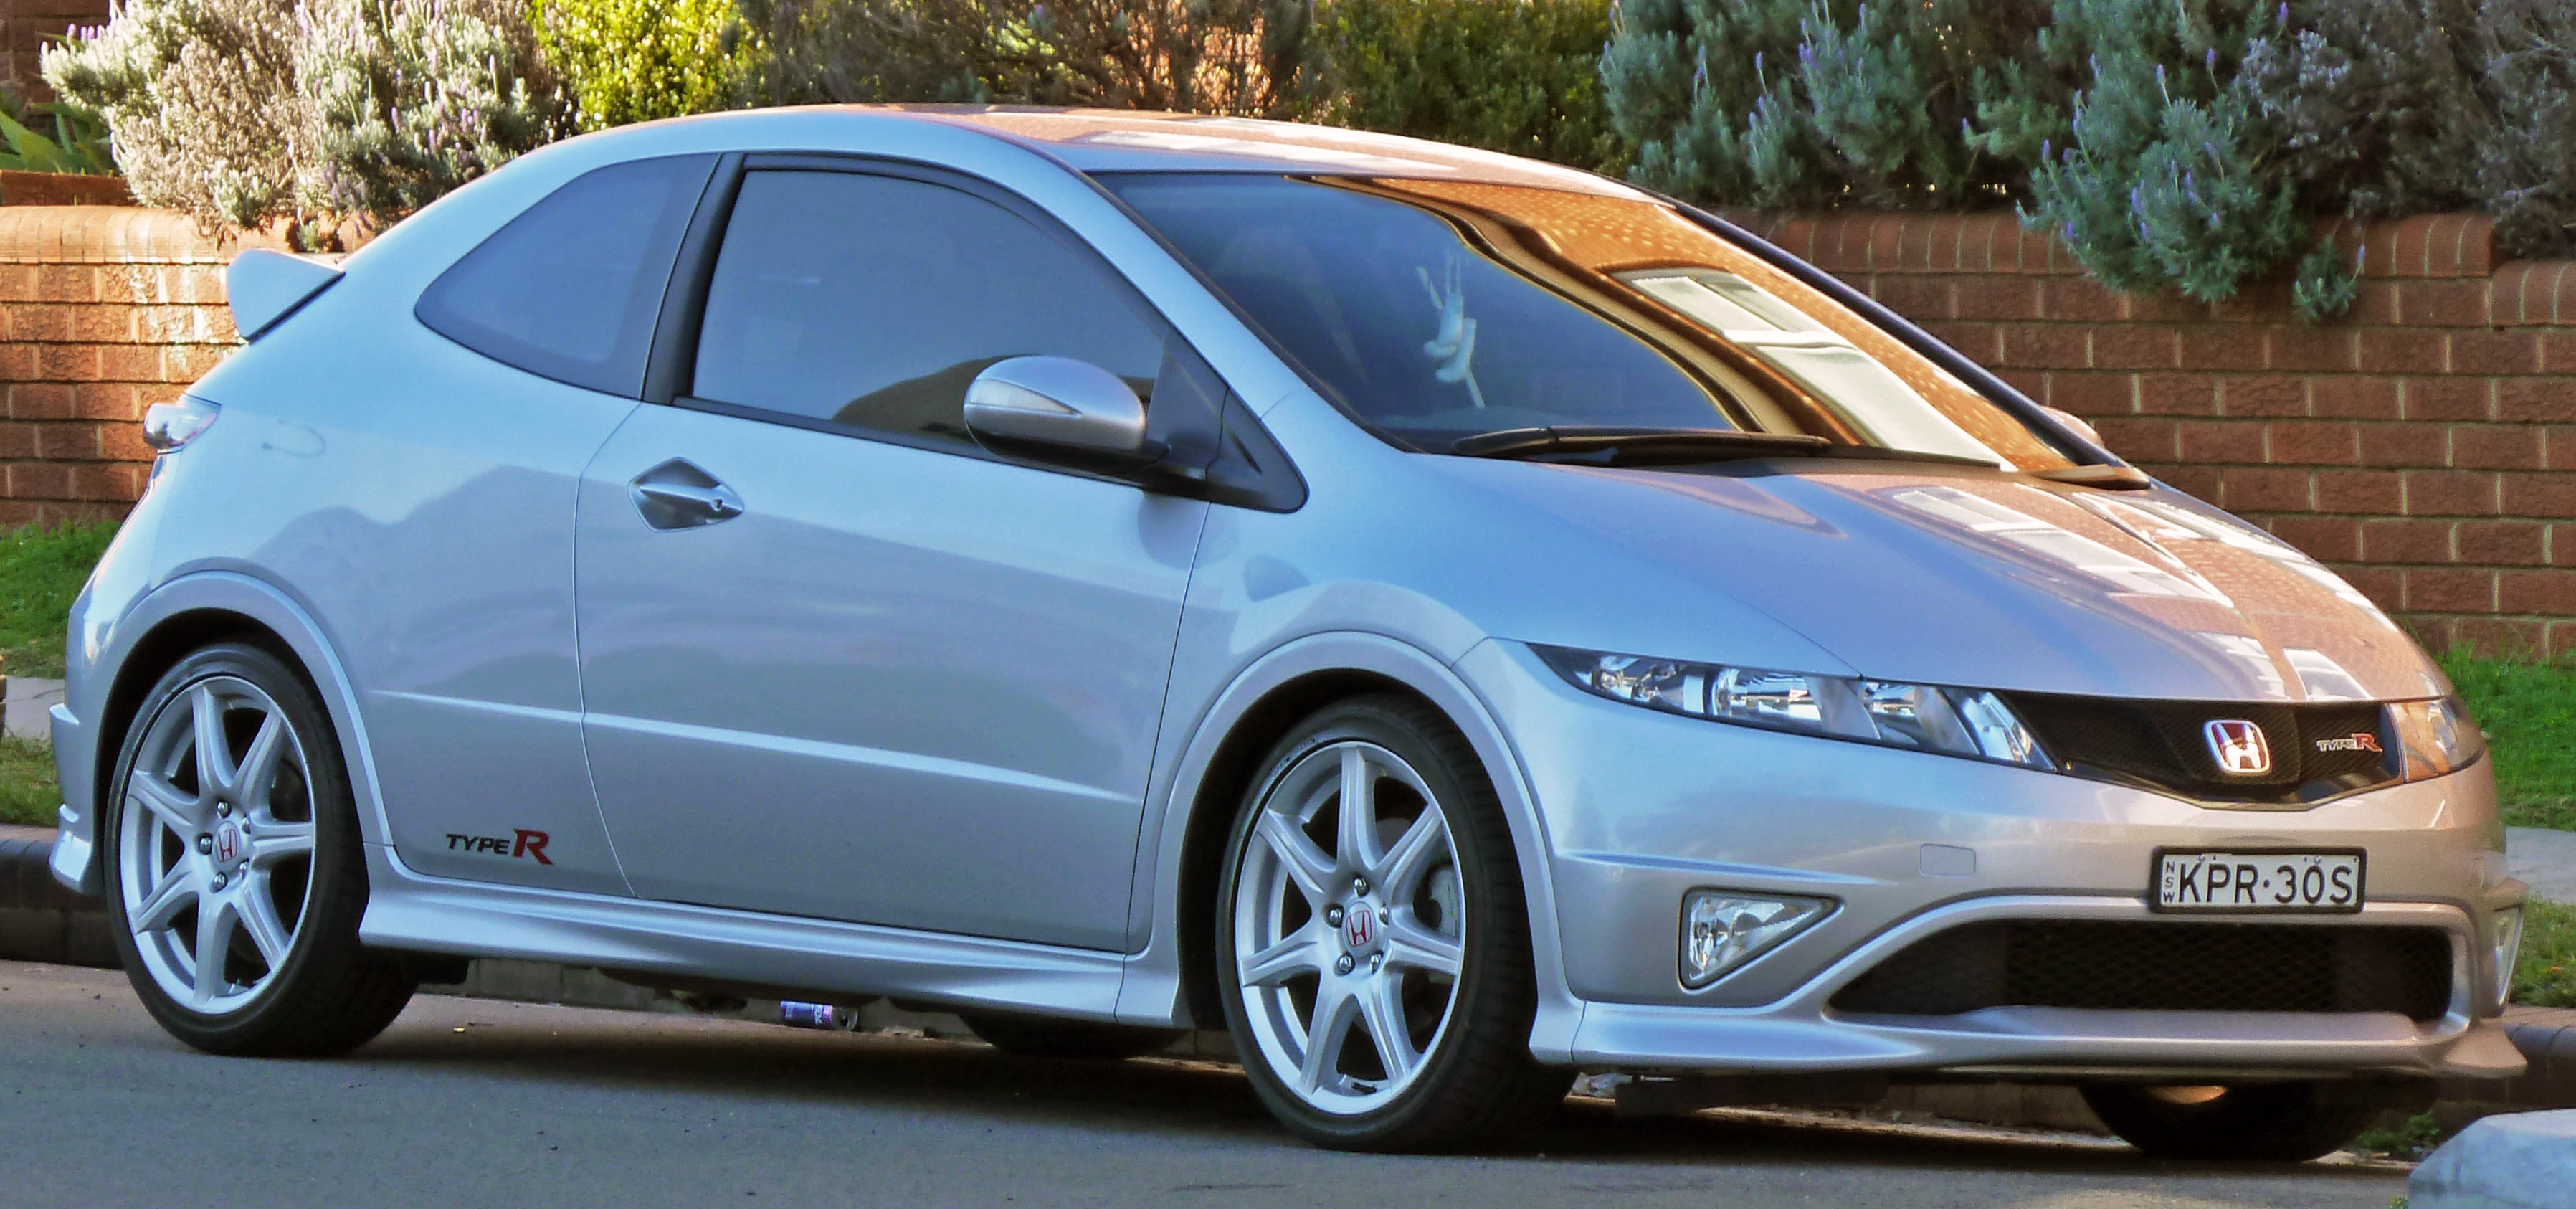 file 2007 2010 honda civic type r 3 door hatchback wikimedia commons. Black Bedroom Furniture Sets. Home Design Ideas